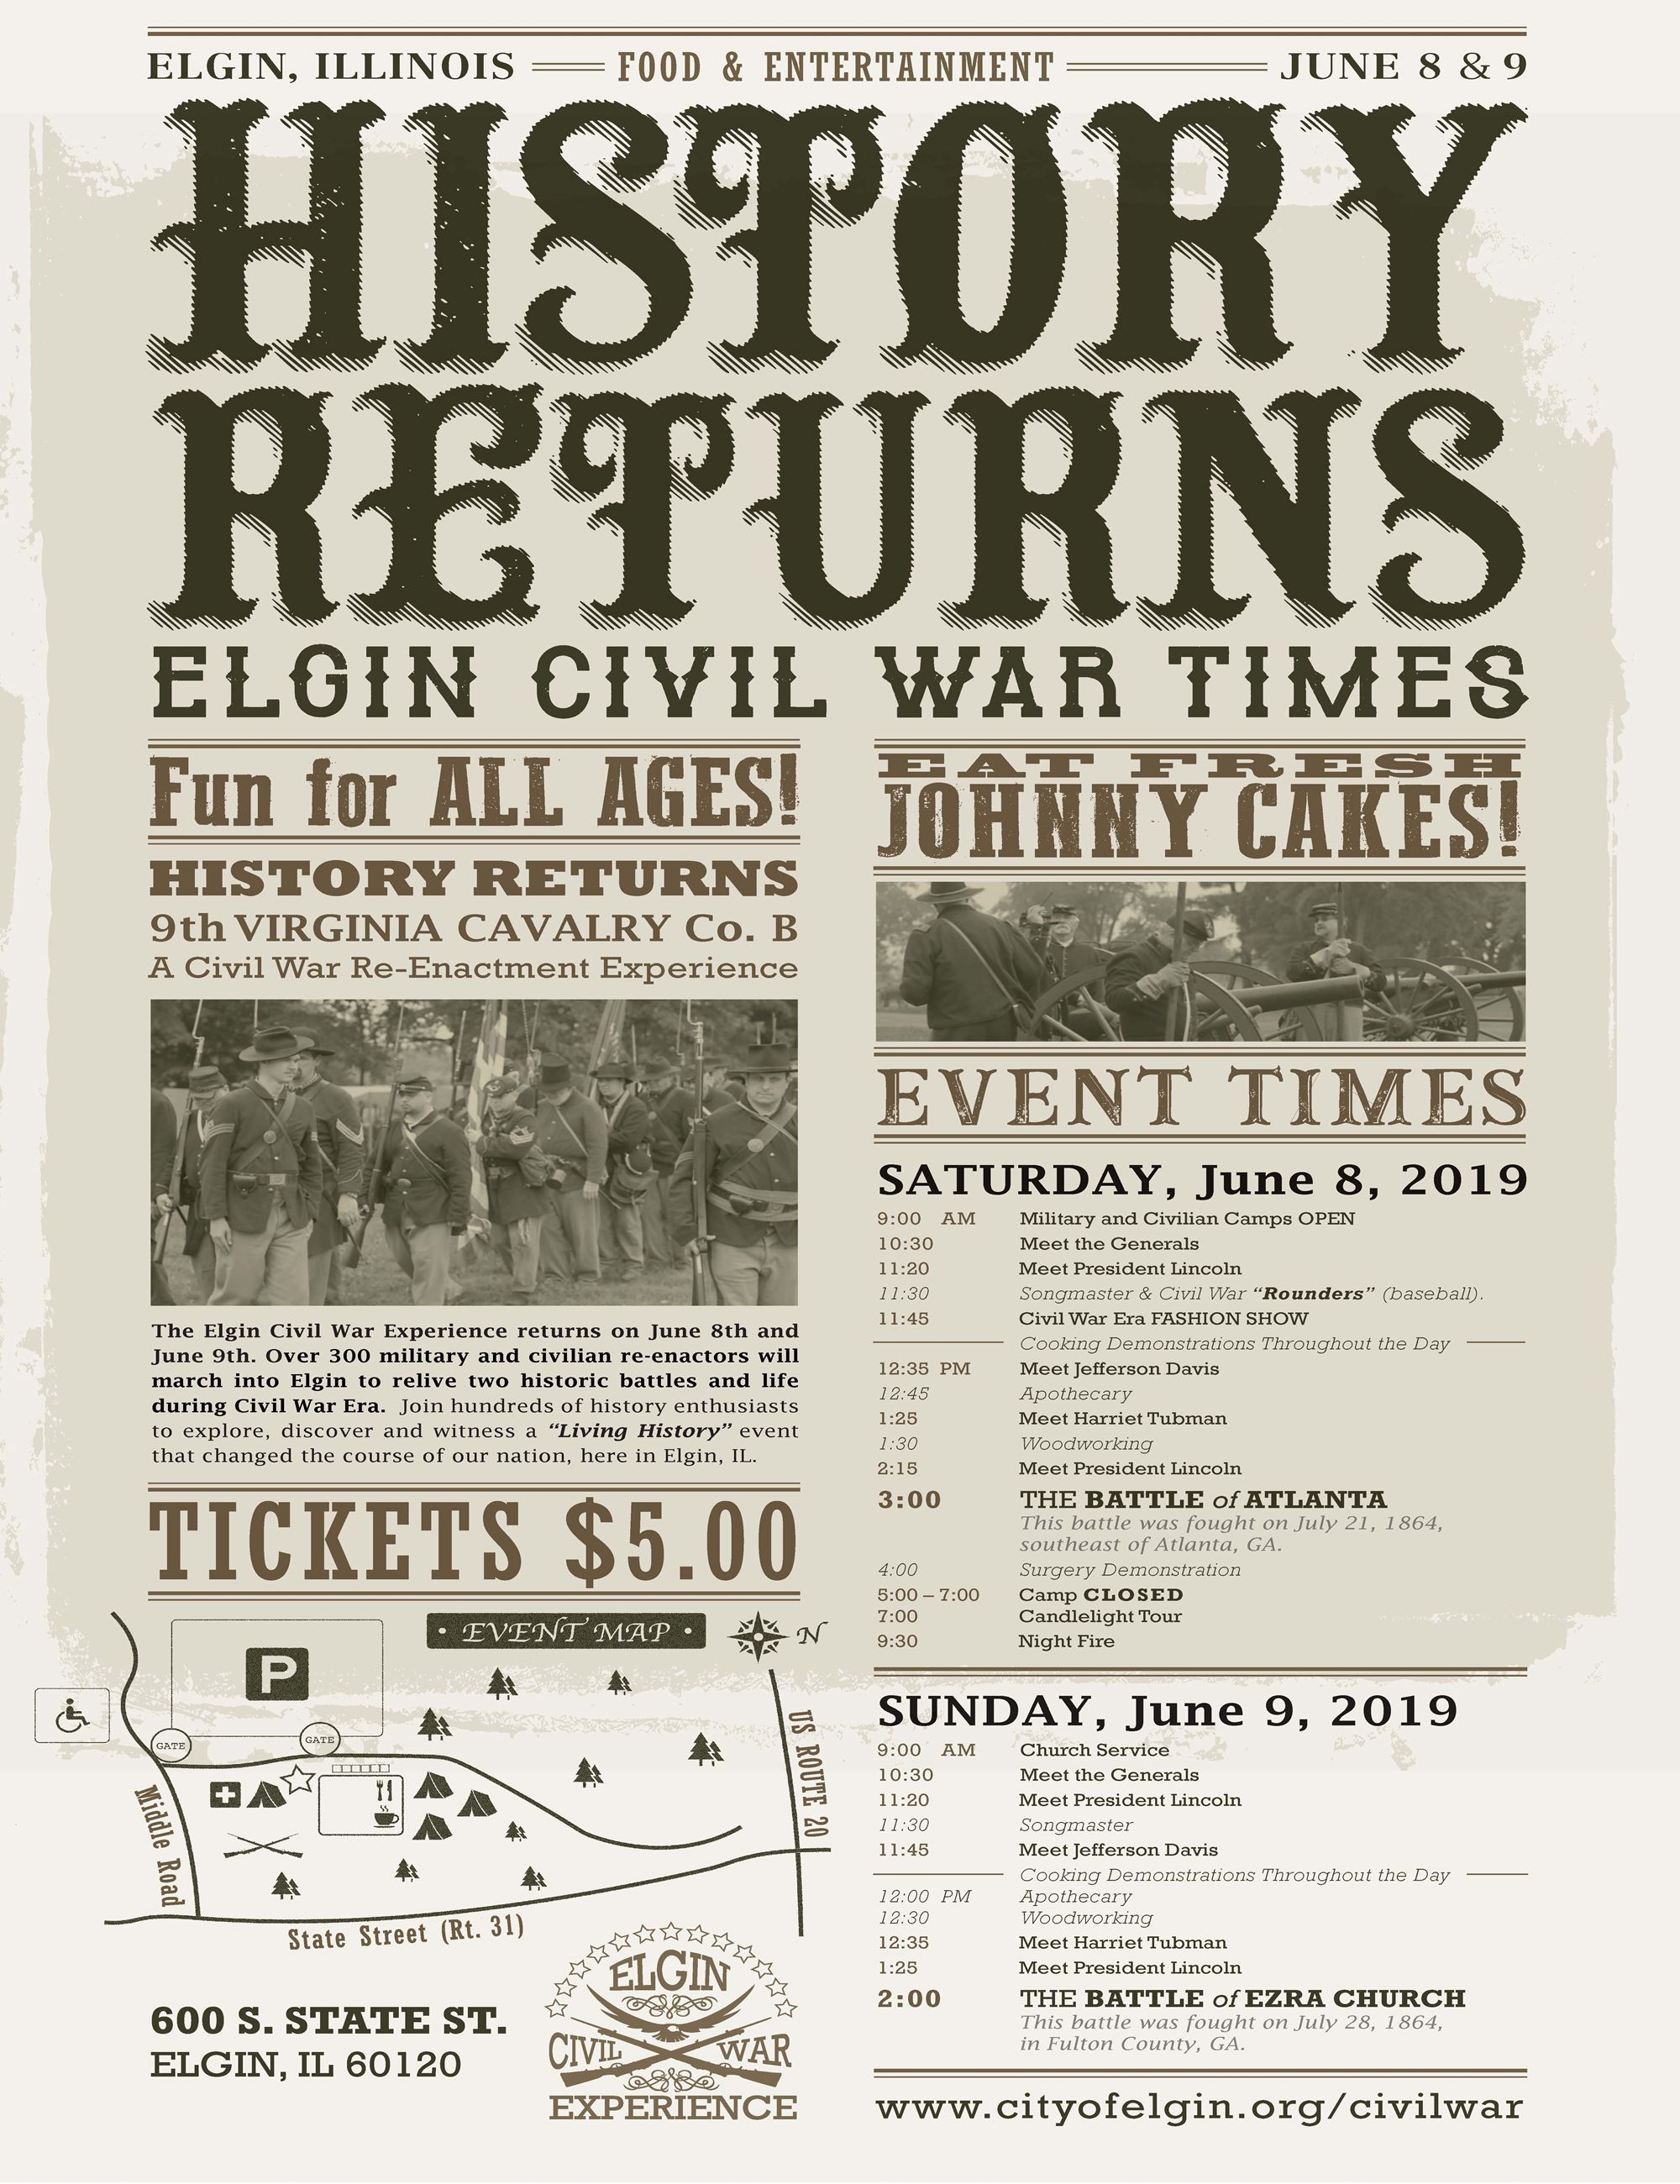 Elgin Civil War Experience History Returns Poster with map and schedule